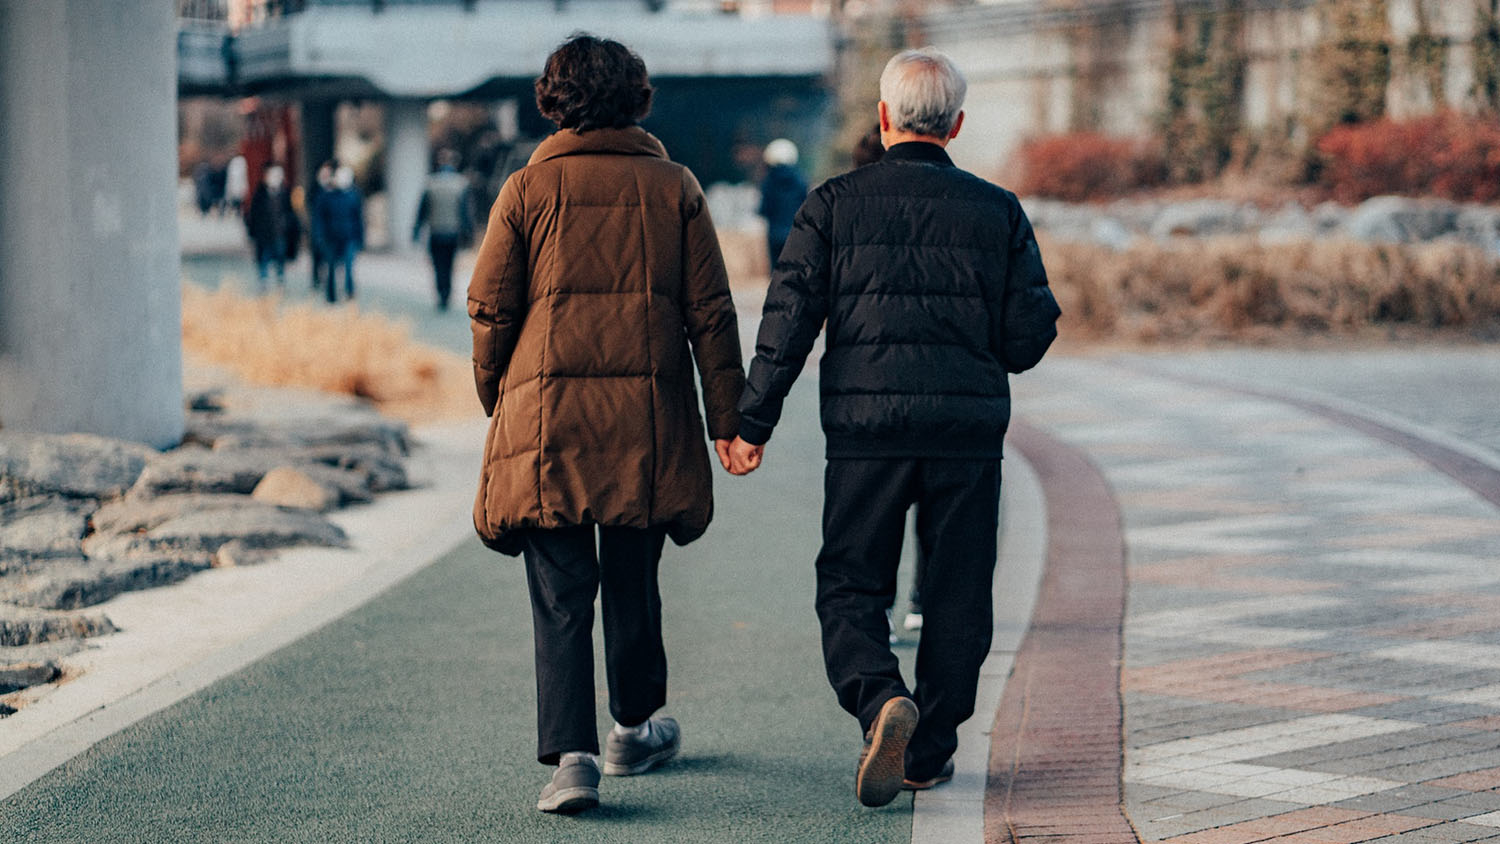 an older couple walks down the street